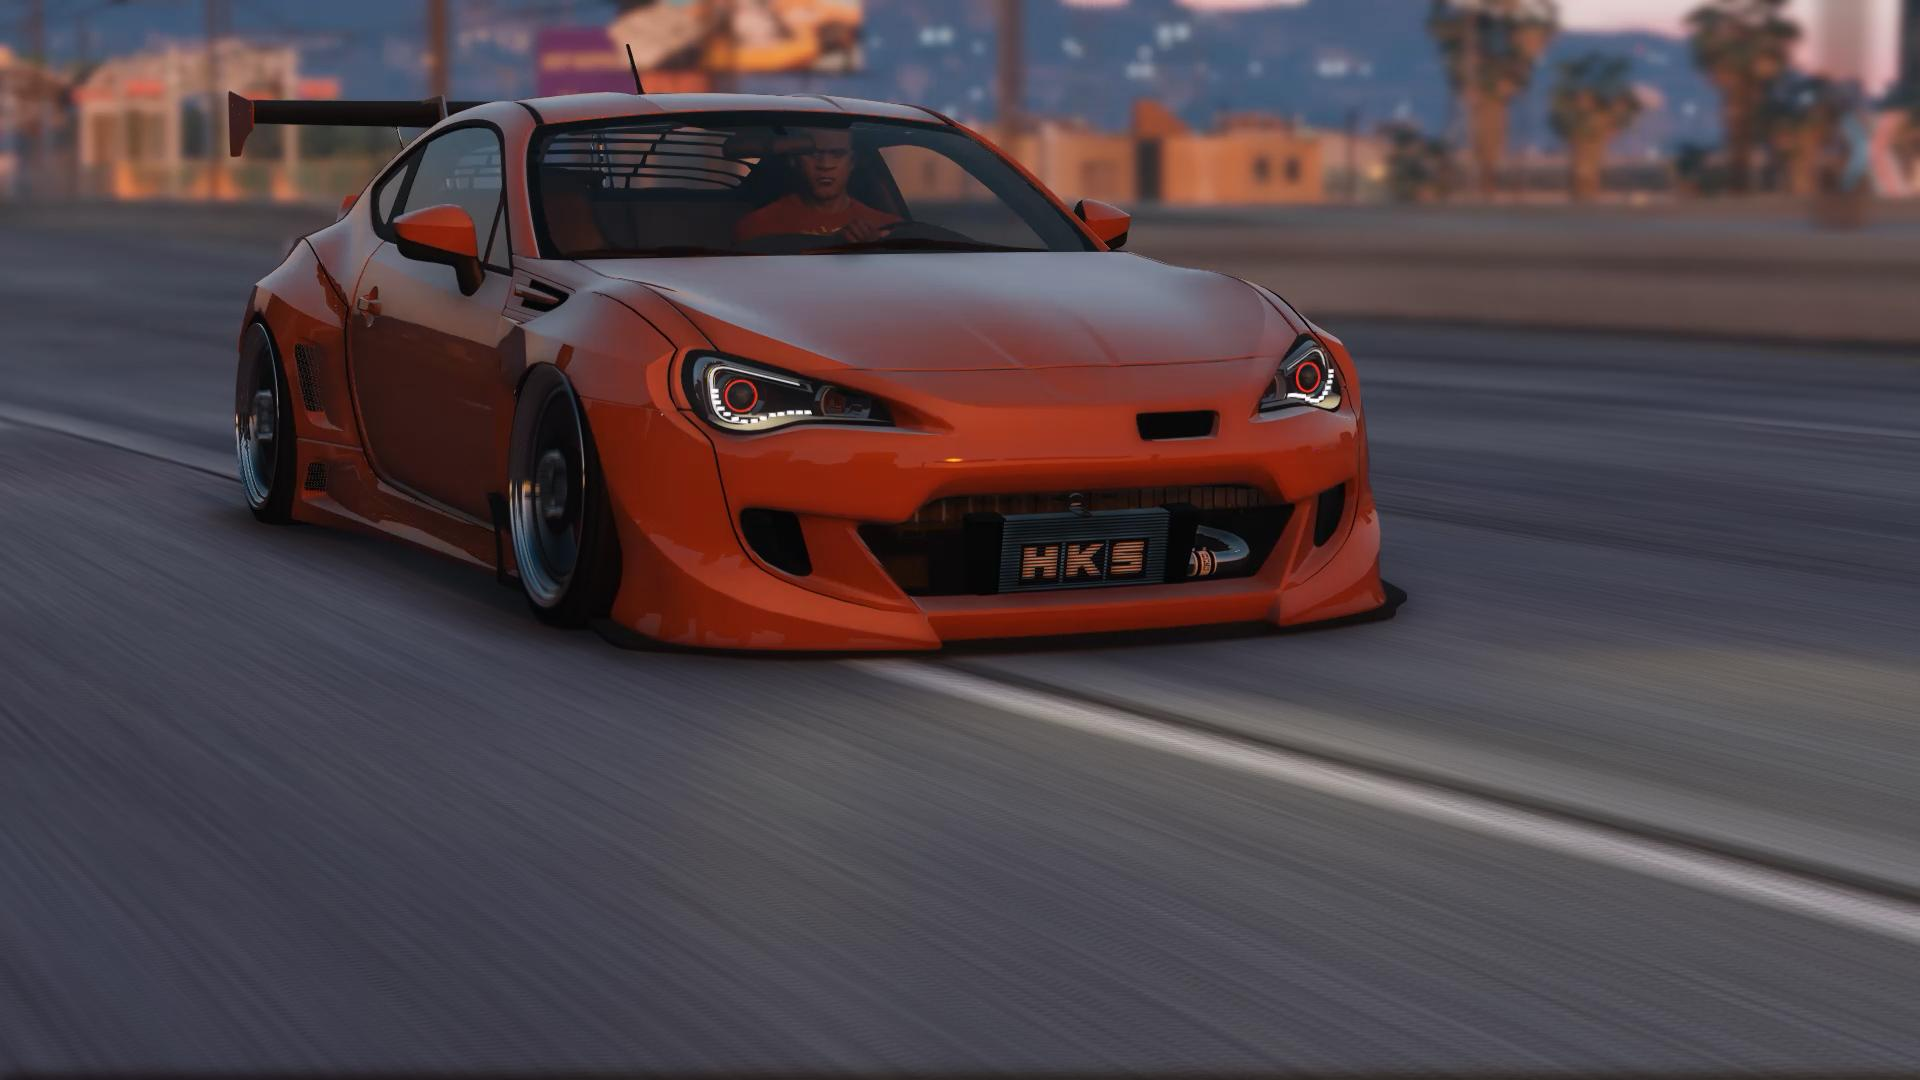 interior subaru brz indonesia with Subaru Brz Rocket Bunny V3 Replace Add On Livery Support on Subaru Unveils Racy Brz Sti Performance Concept 0210 together with Team Limo also Tc2 2012 Wide Body Kit together with 1 moreover 2015 Hyundai I40 Tourer Premium Series Ii Review.